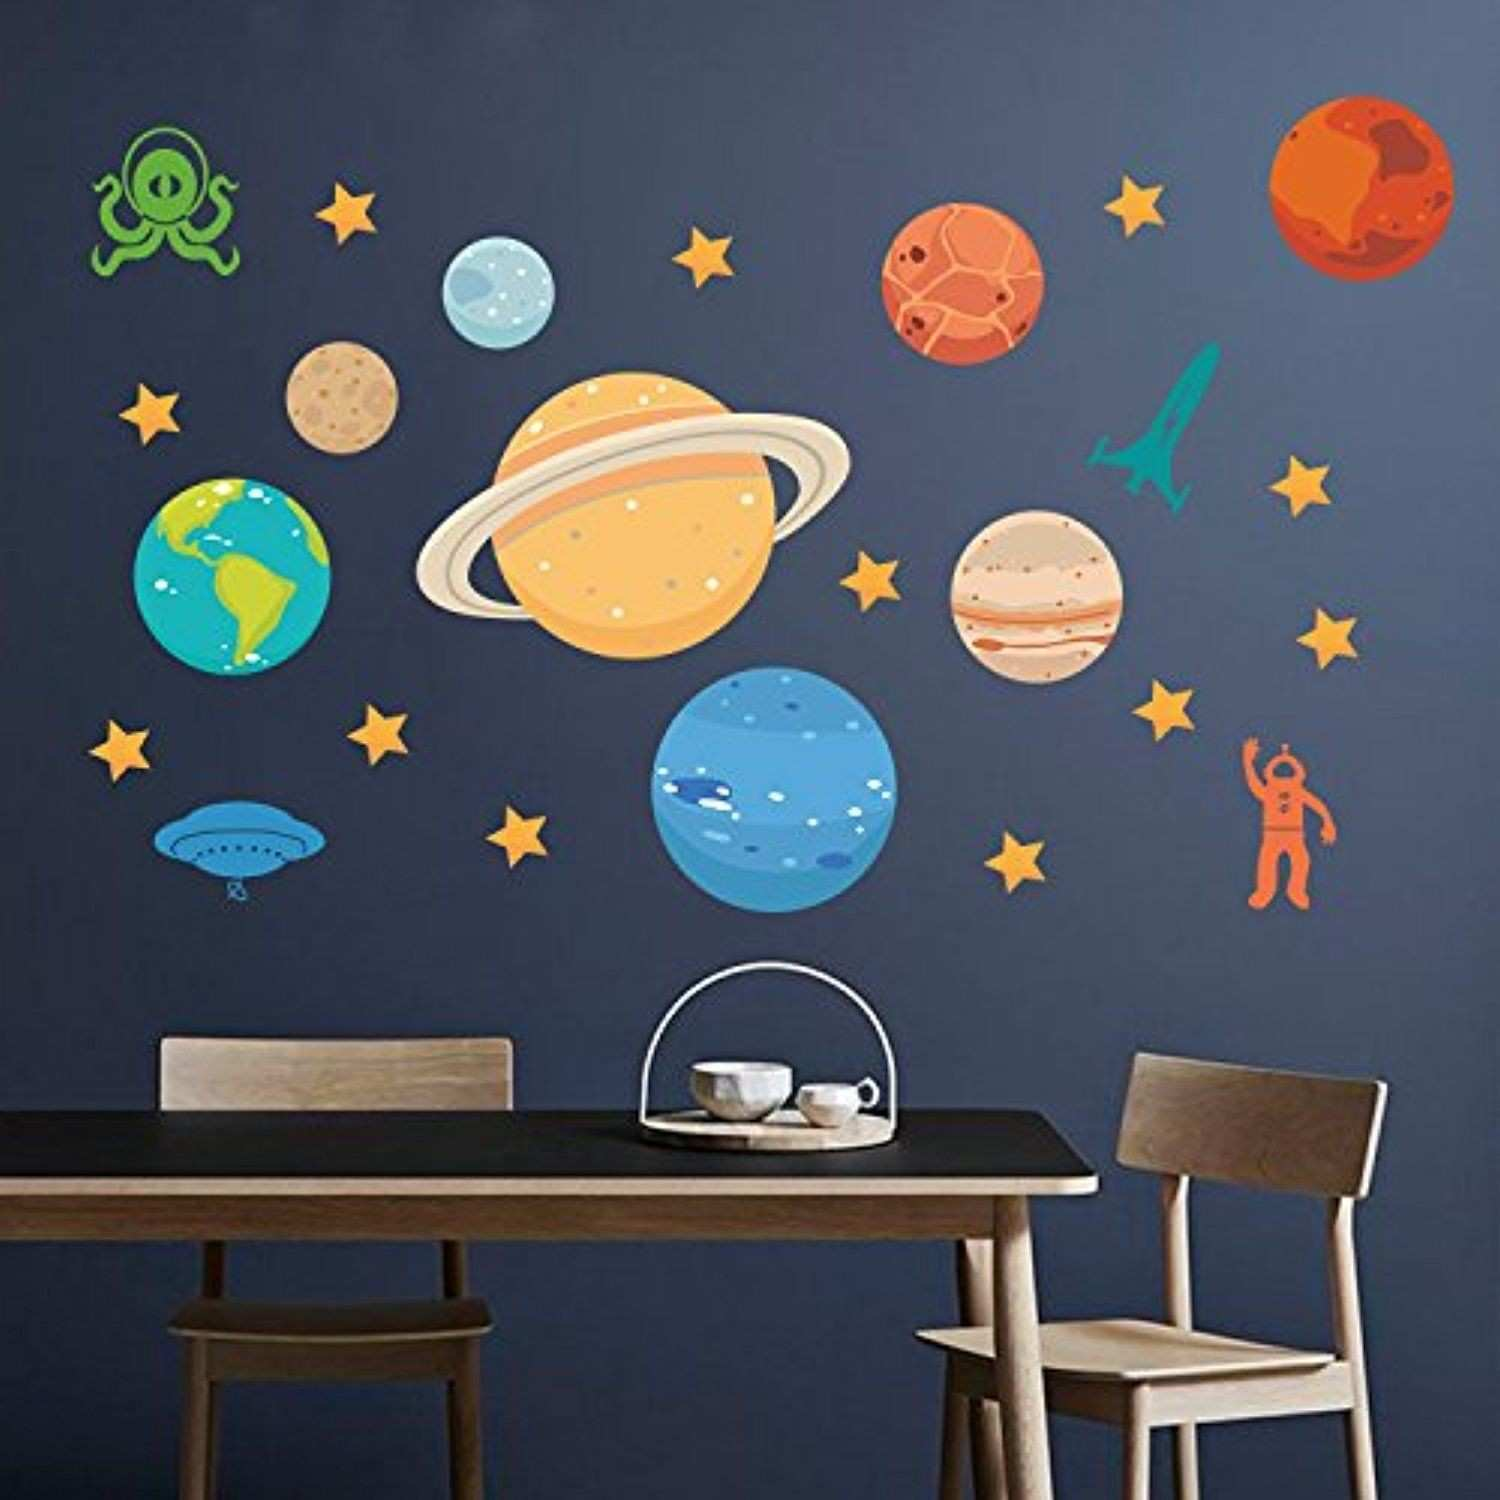 DecalMile Planets UFO Stars Space Wall Stickers Removable DIY Wall